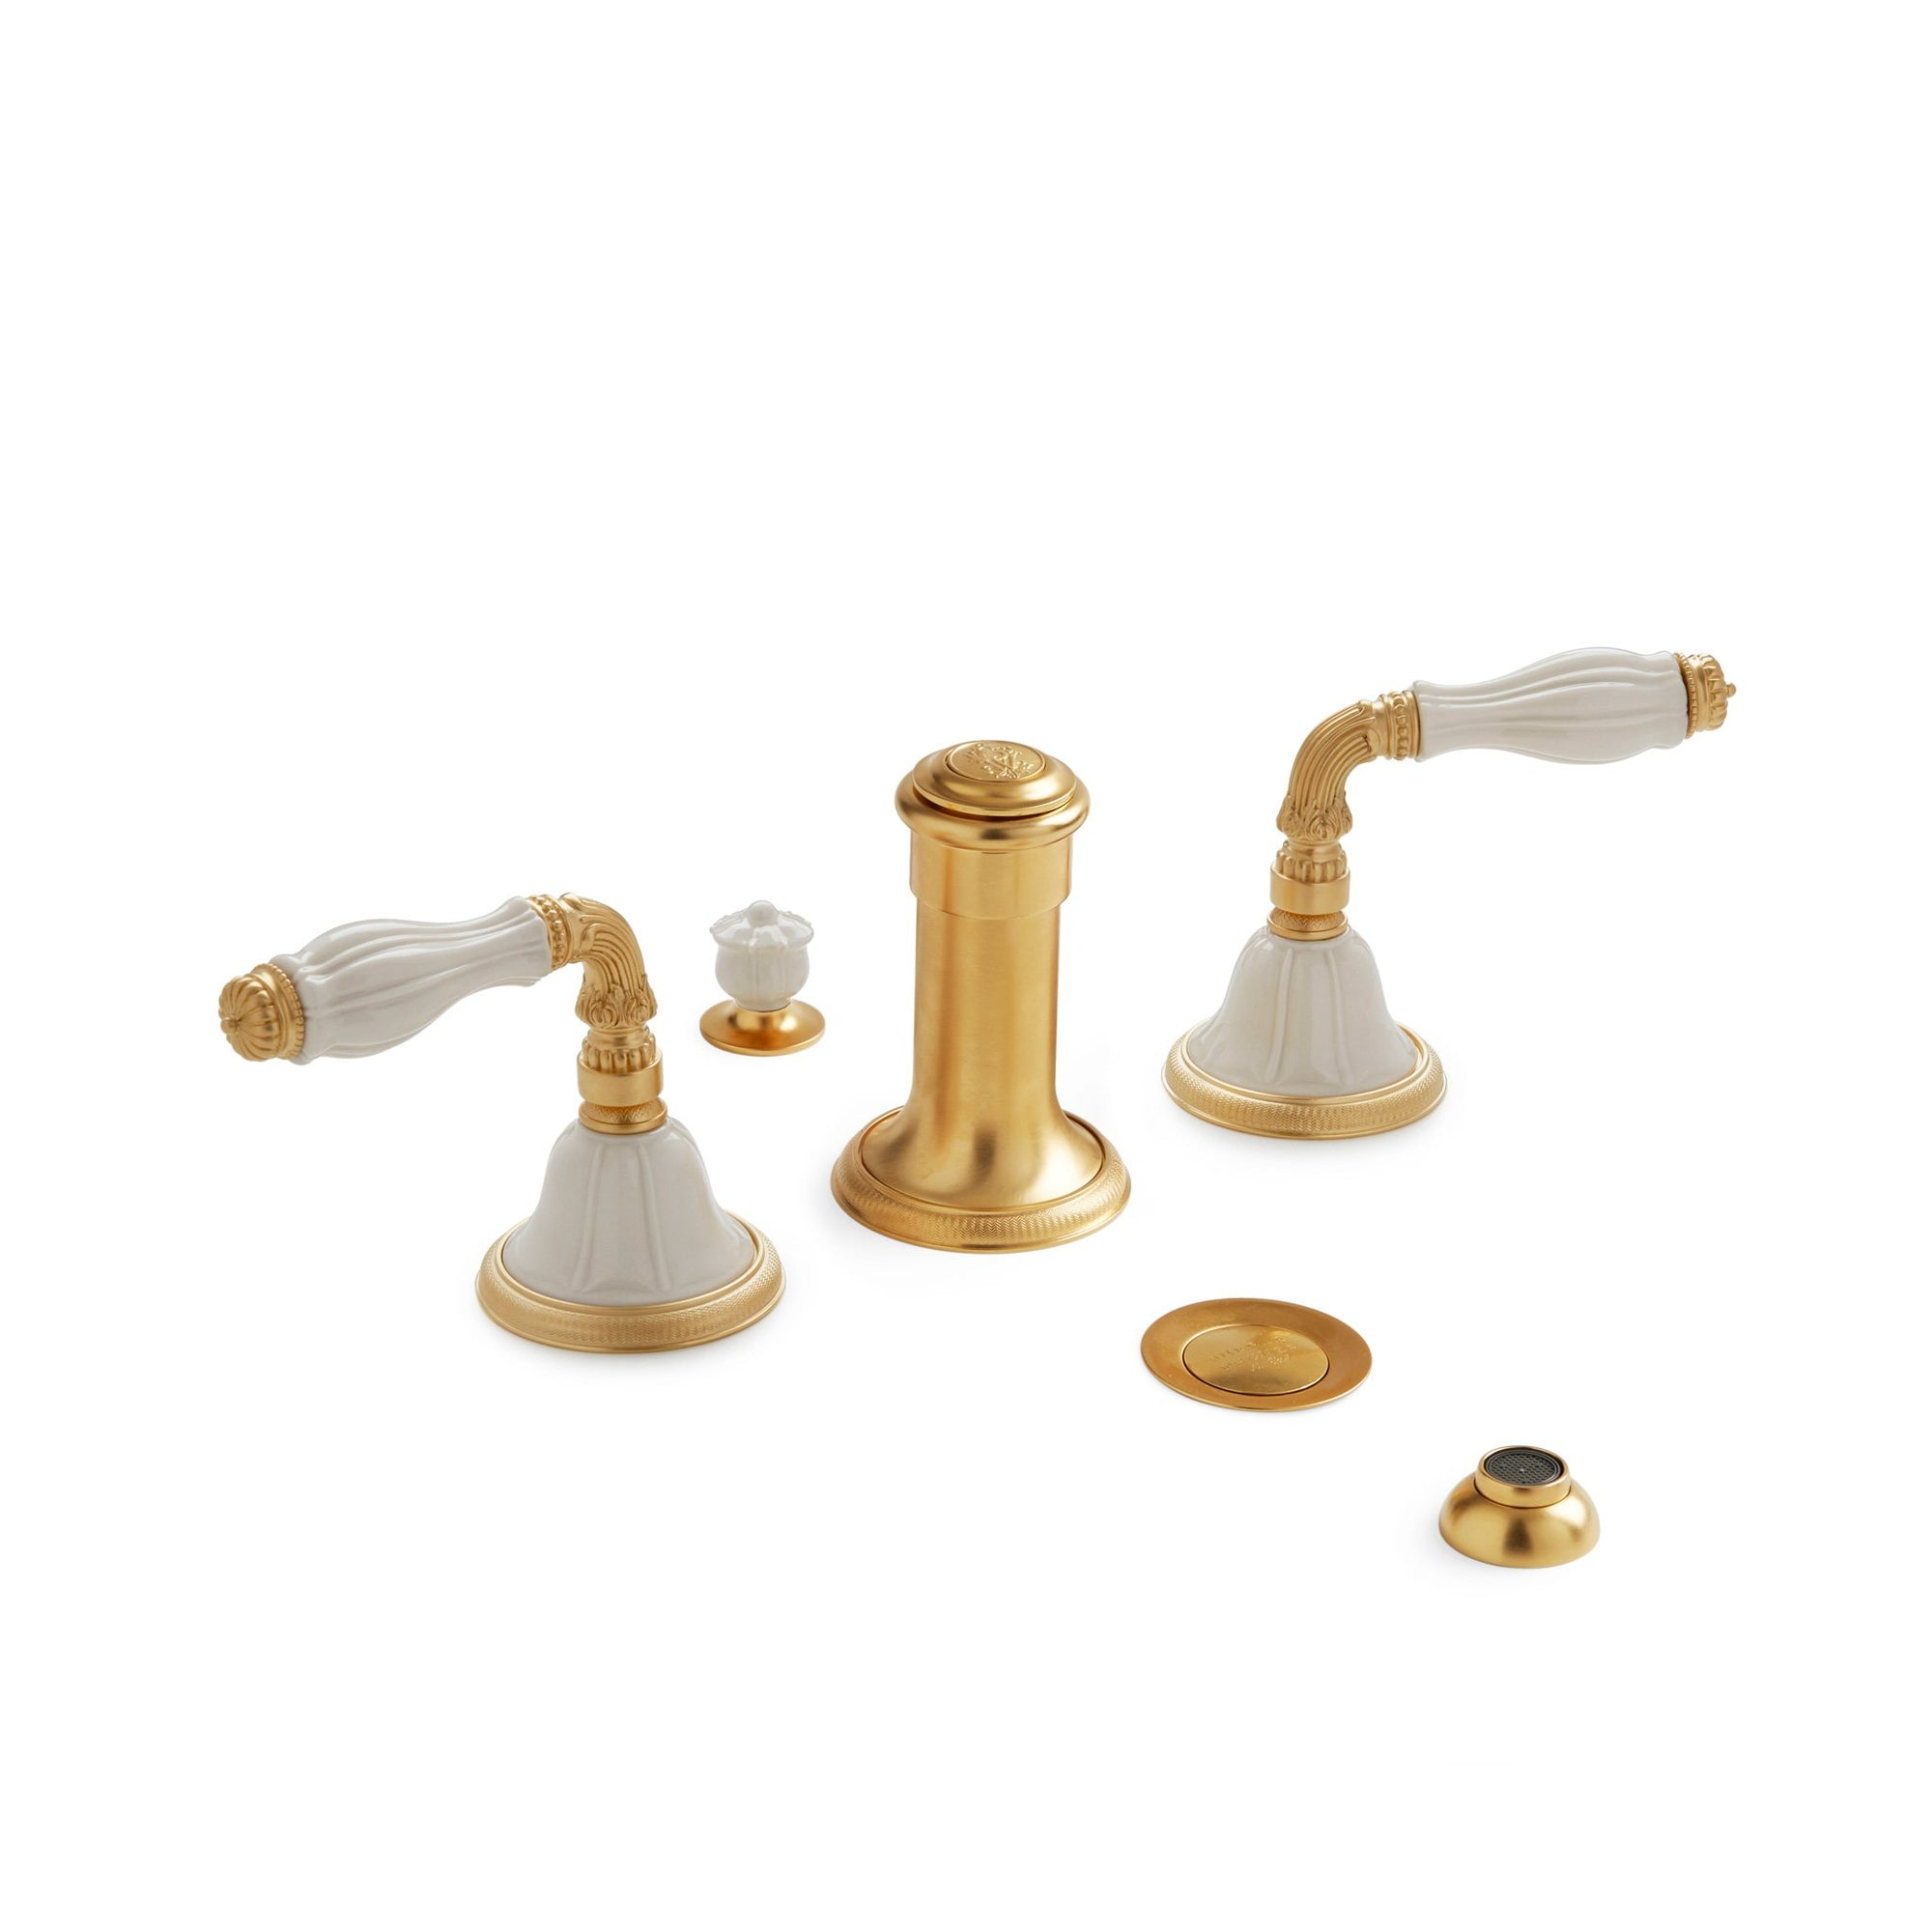 1029BDT-4H-03SD-GP Sherle Wagner International Scalloped Ceramic Fluted Lever Bidet Set in Gold Plate metal finish